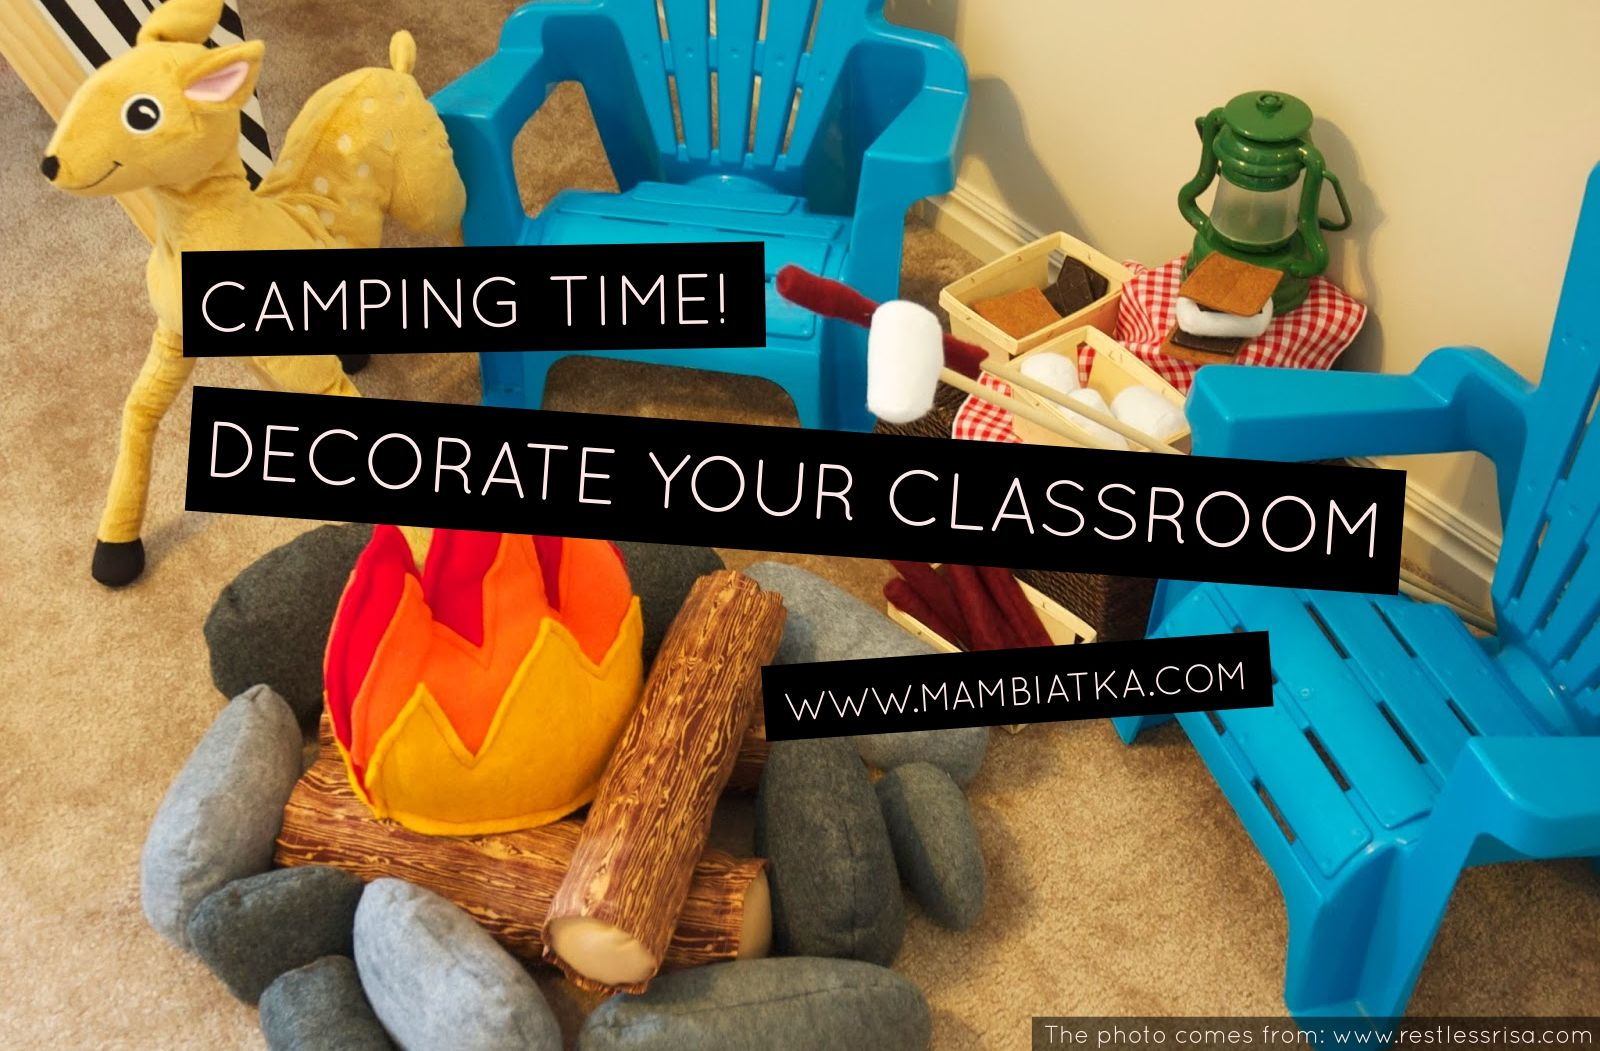 Camping Classroom Decoration : Camping time! decorate your classroom! vbs 2017 pinterest swim